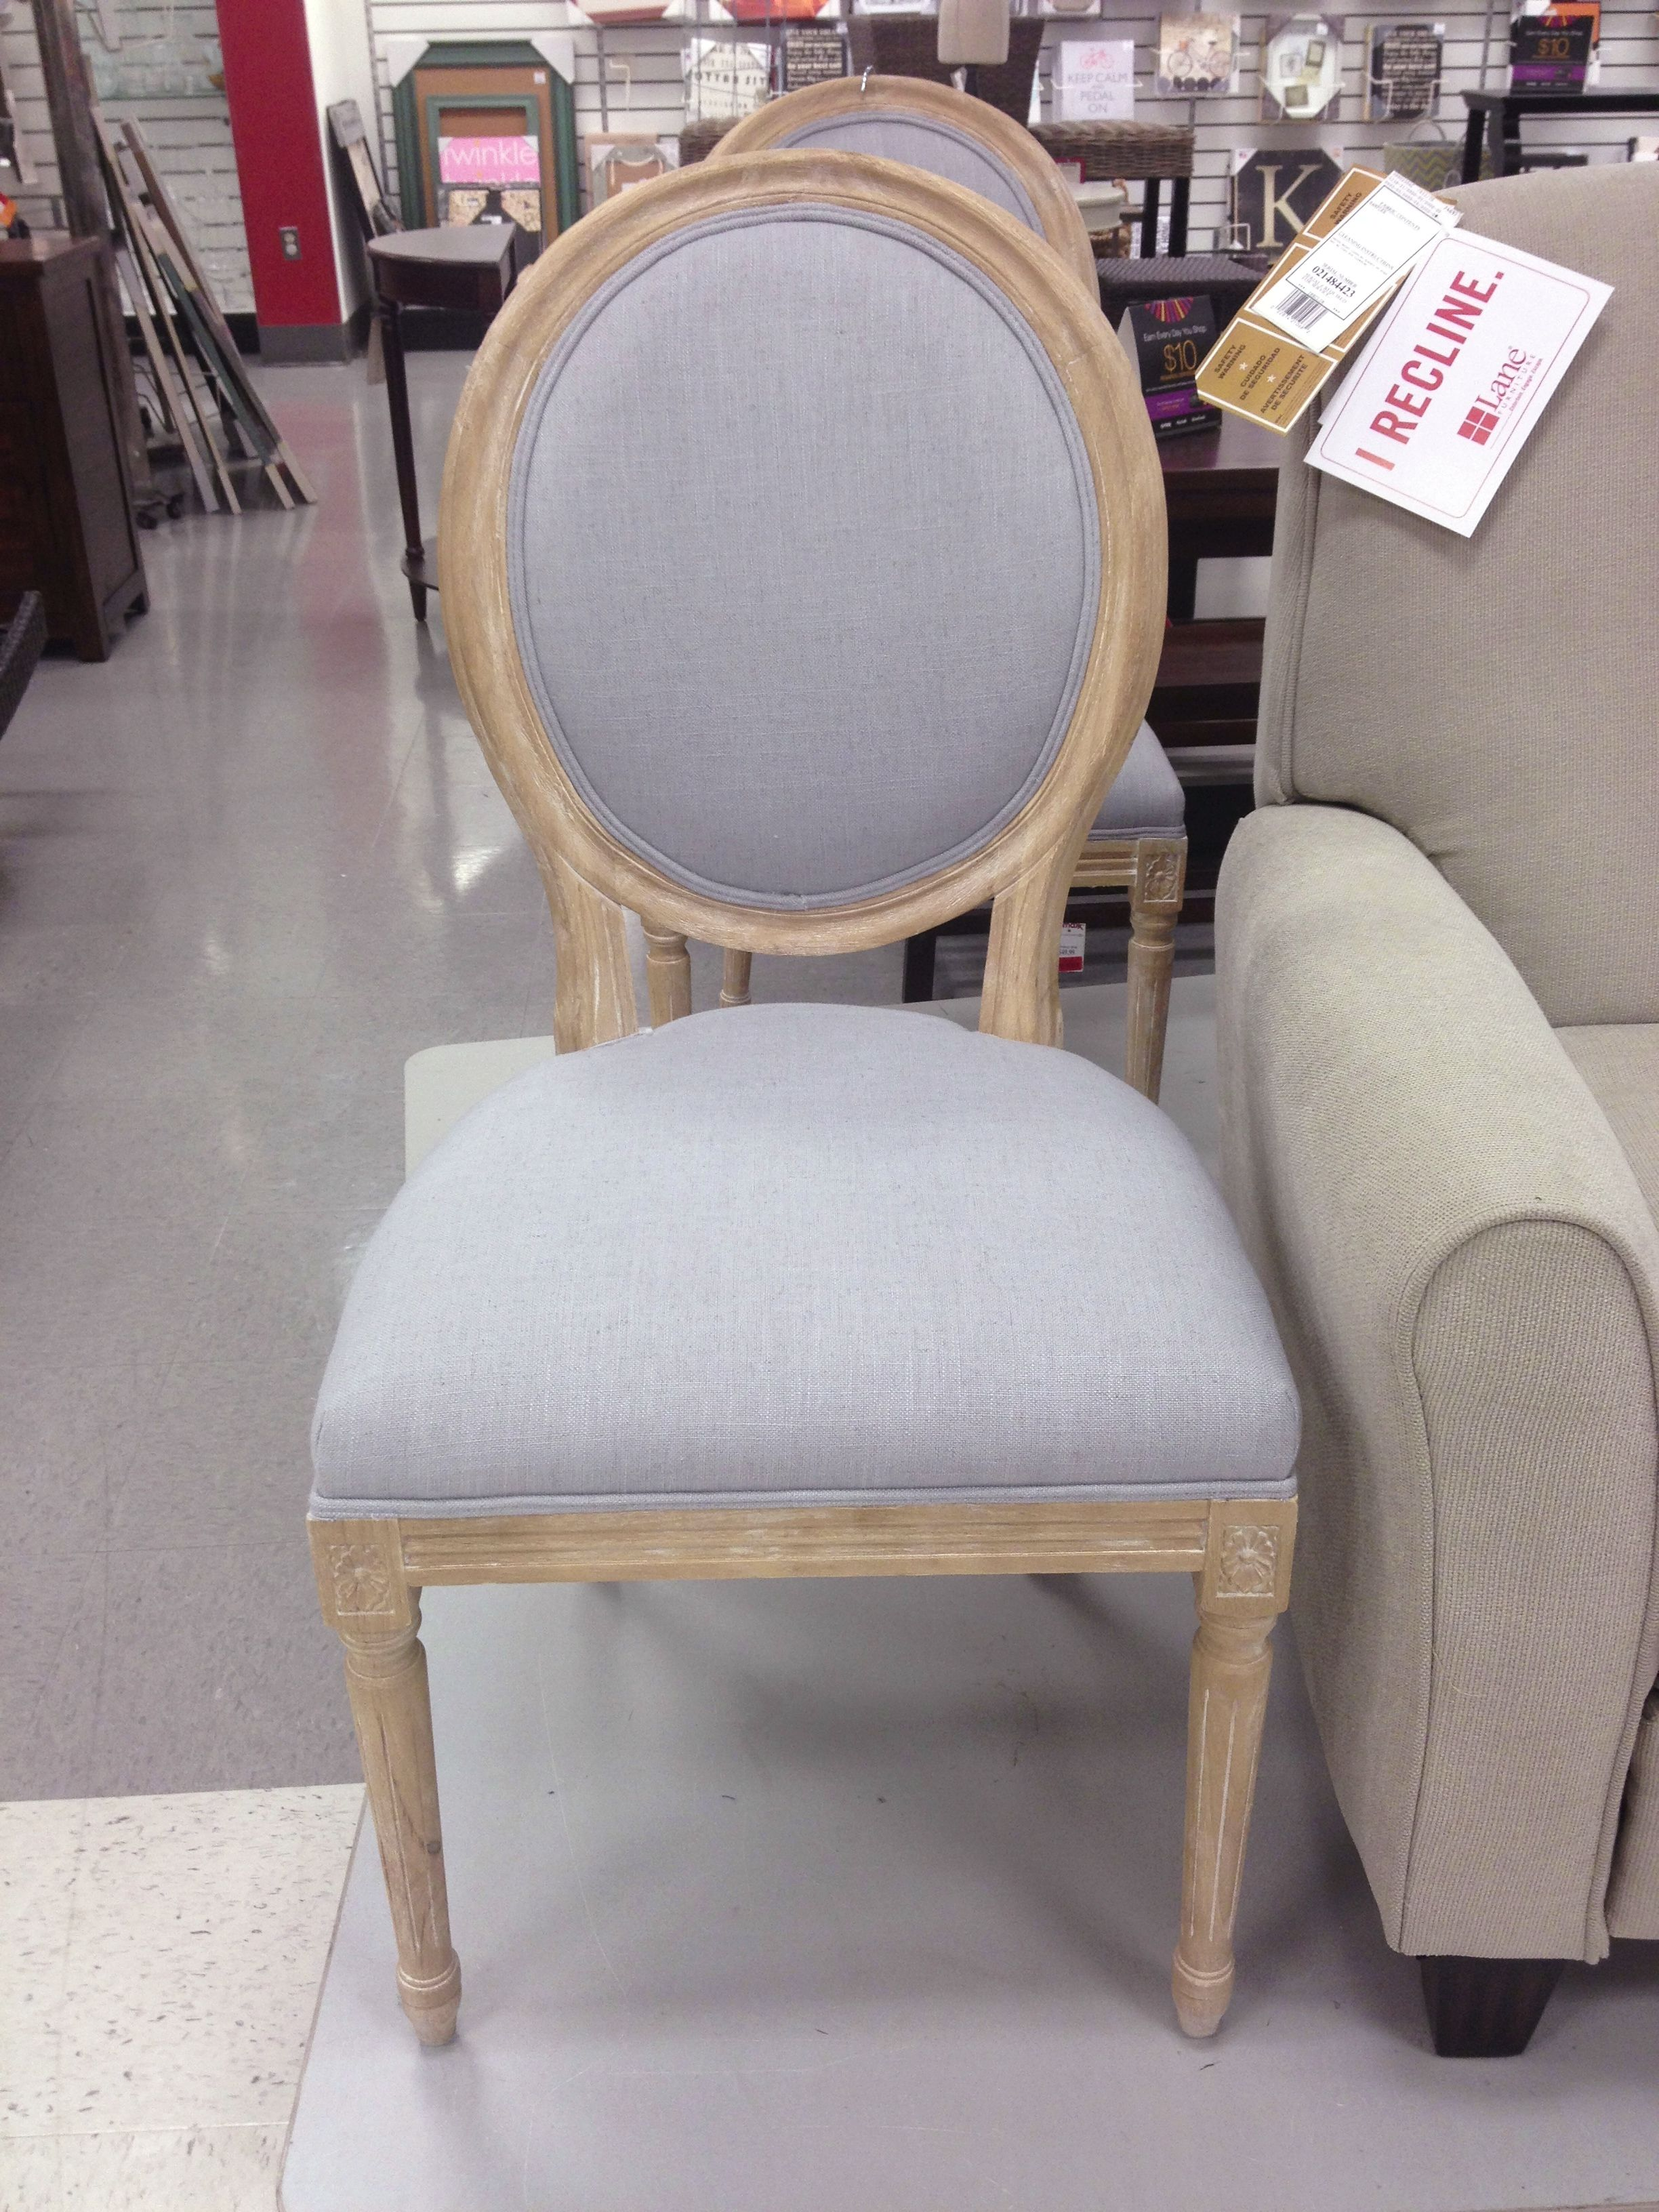 Marshalls Furniture Chairs French Chairs Tj Maxx Marshalls Furniture Finds Pinterest